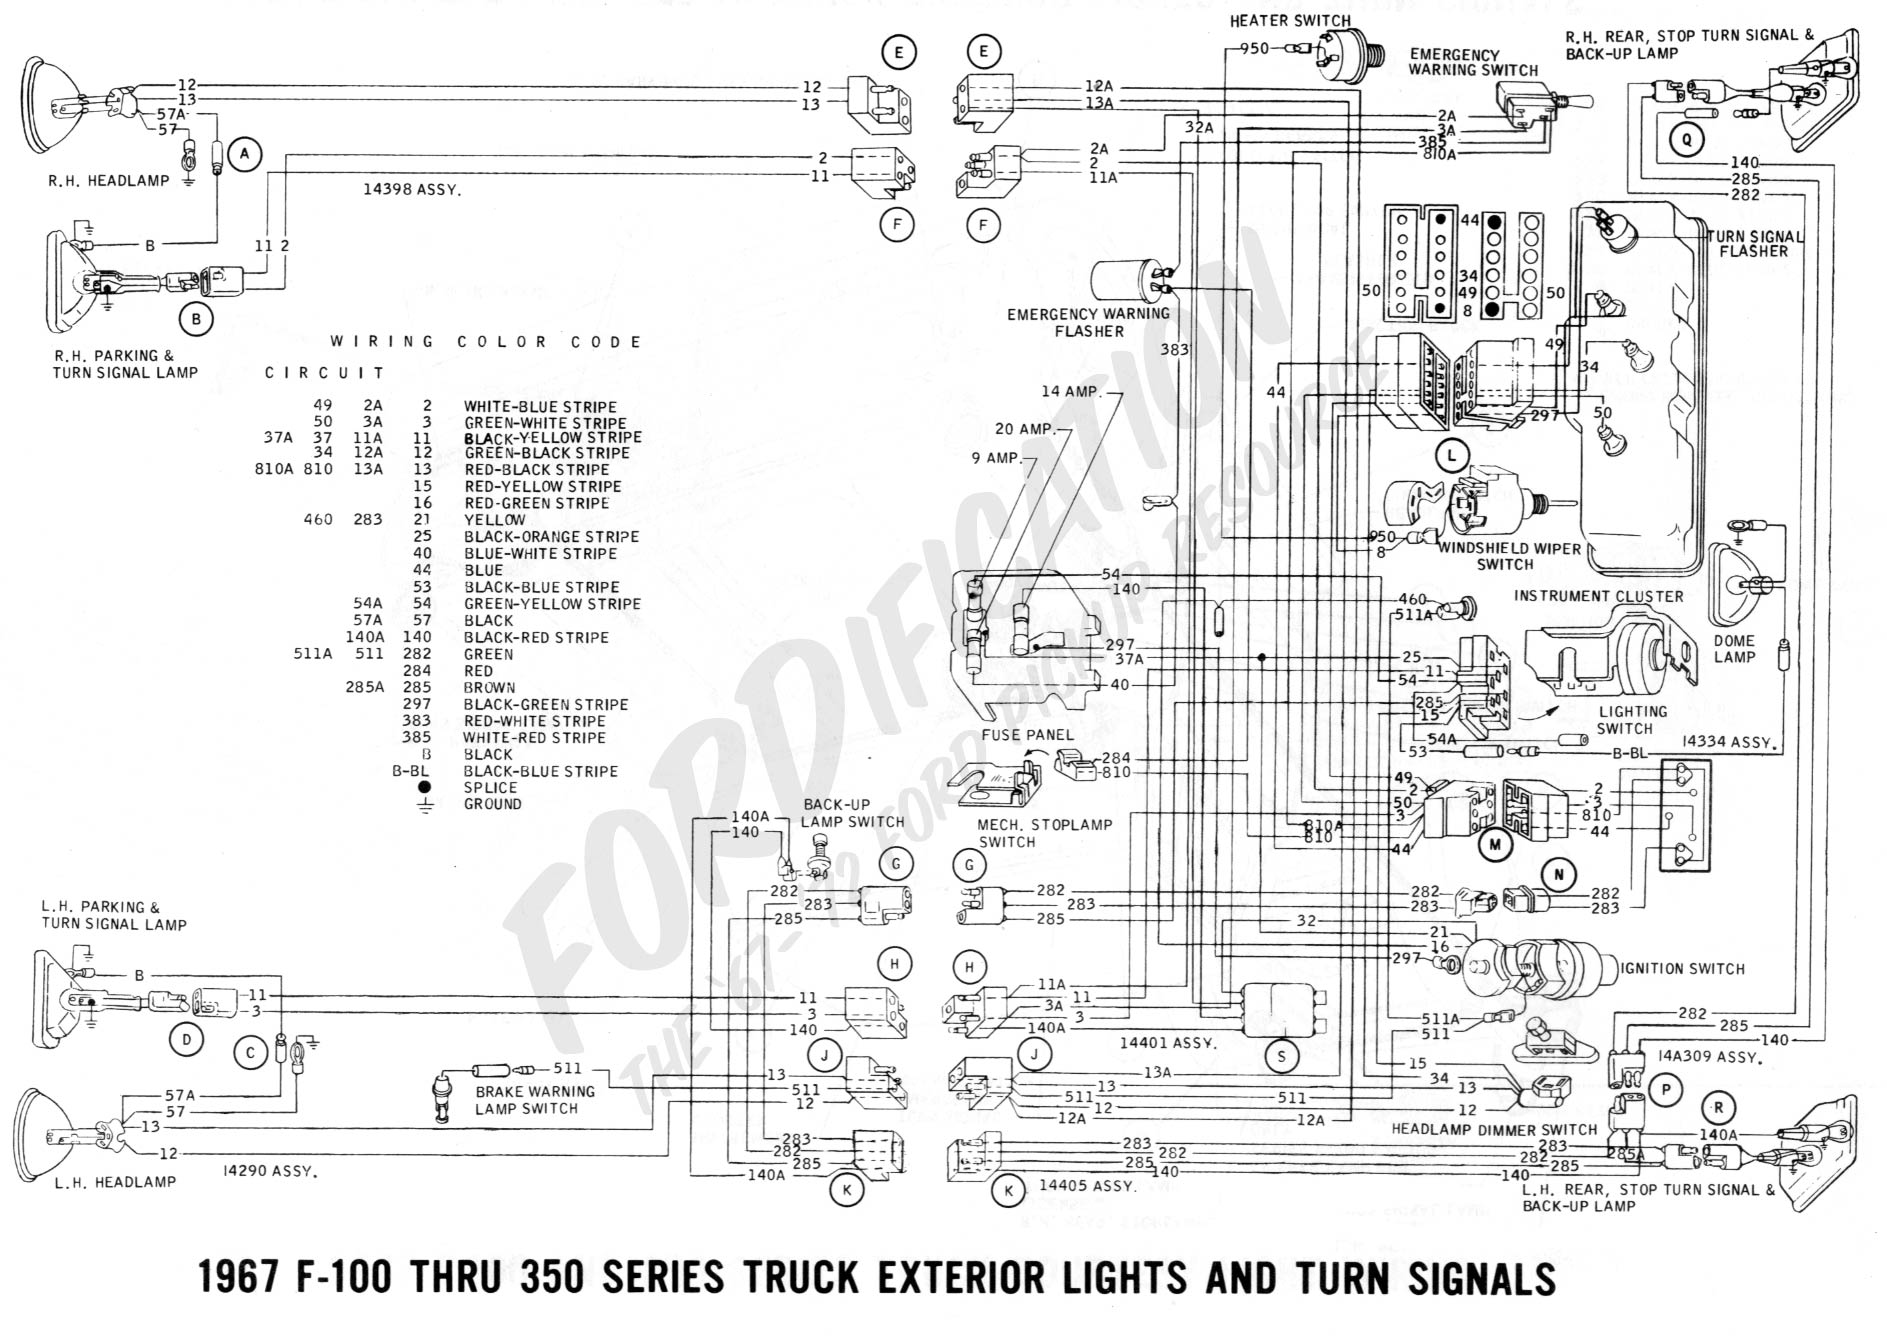 1979 Ford Mustang Fuse Box Wiring Schematics Diagram Library 2000 E250 Block 92 Turn Signal Detailed E150 02